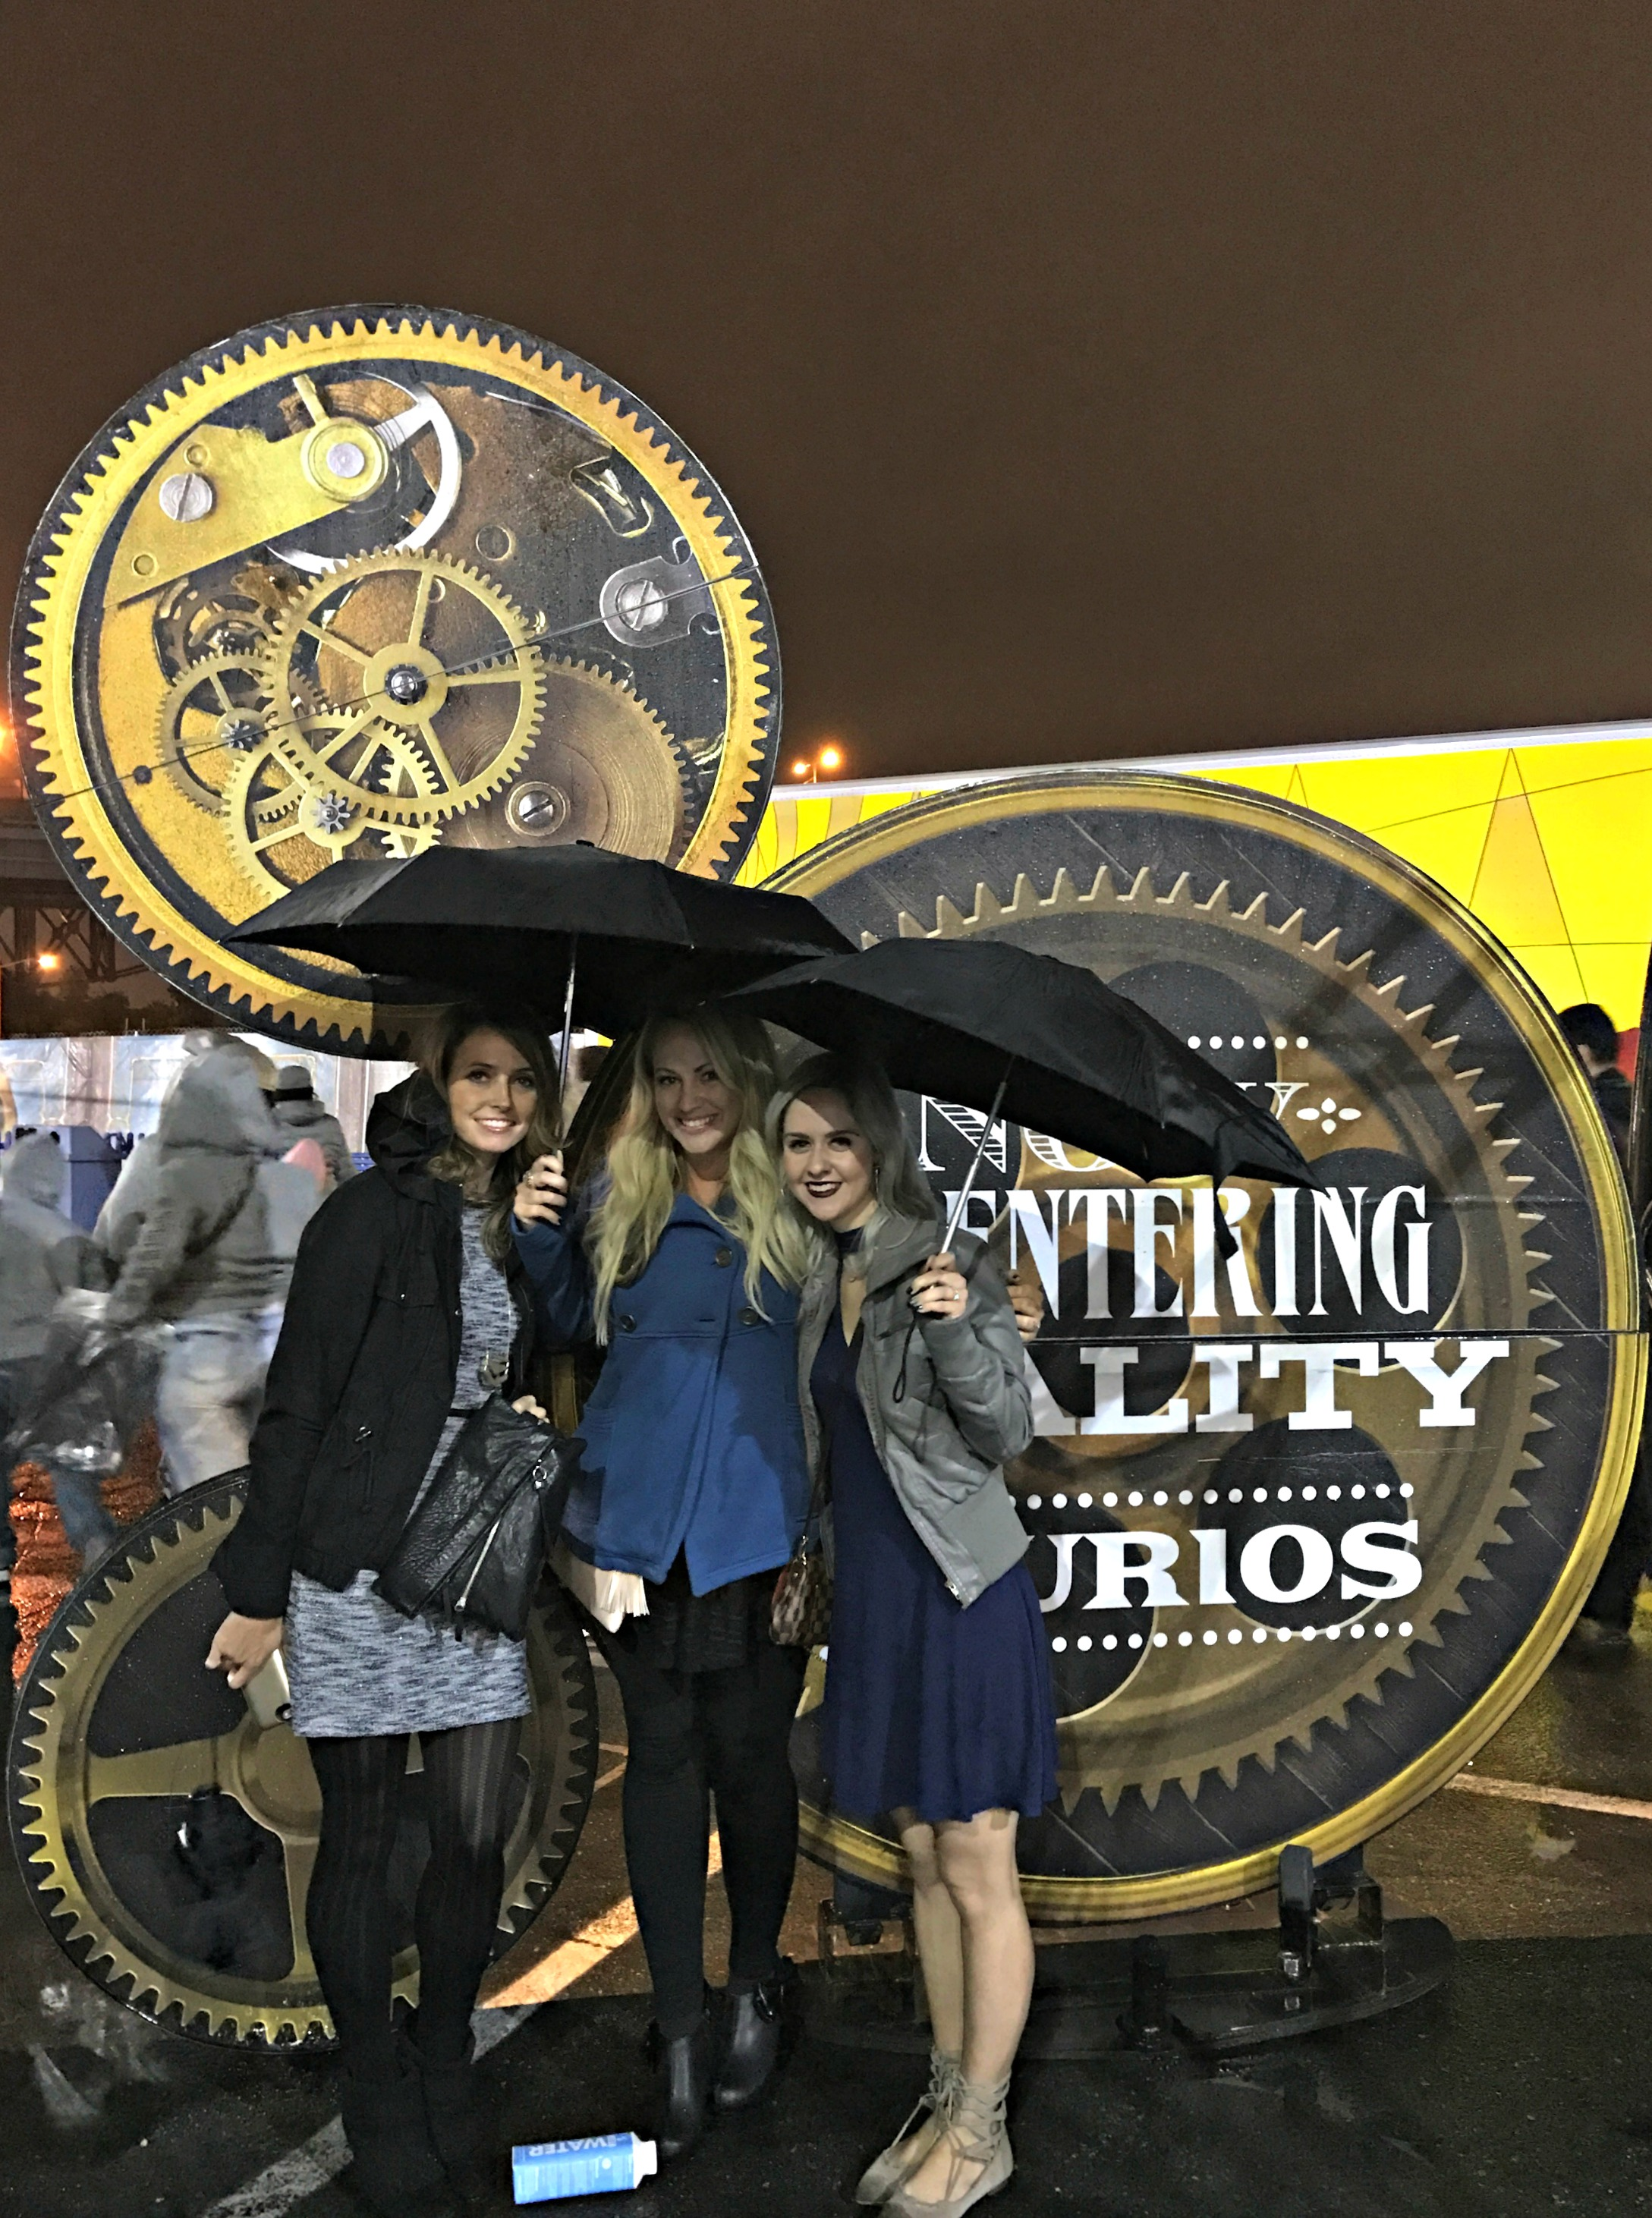 kurios-cirque-du-soleil-show-with-missy-and-brittany